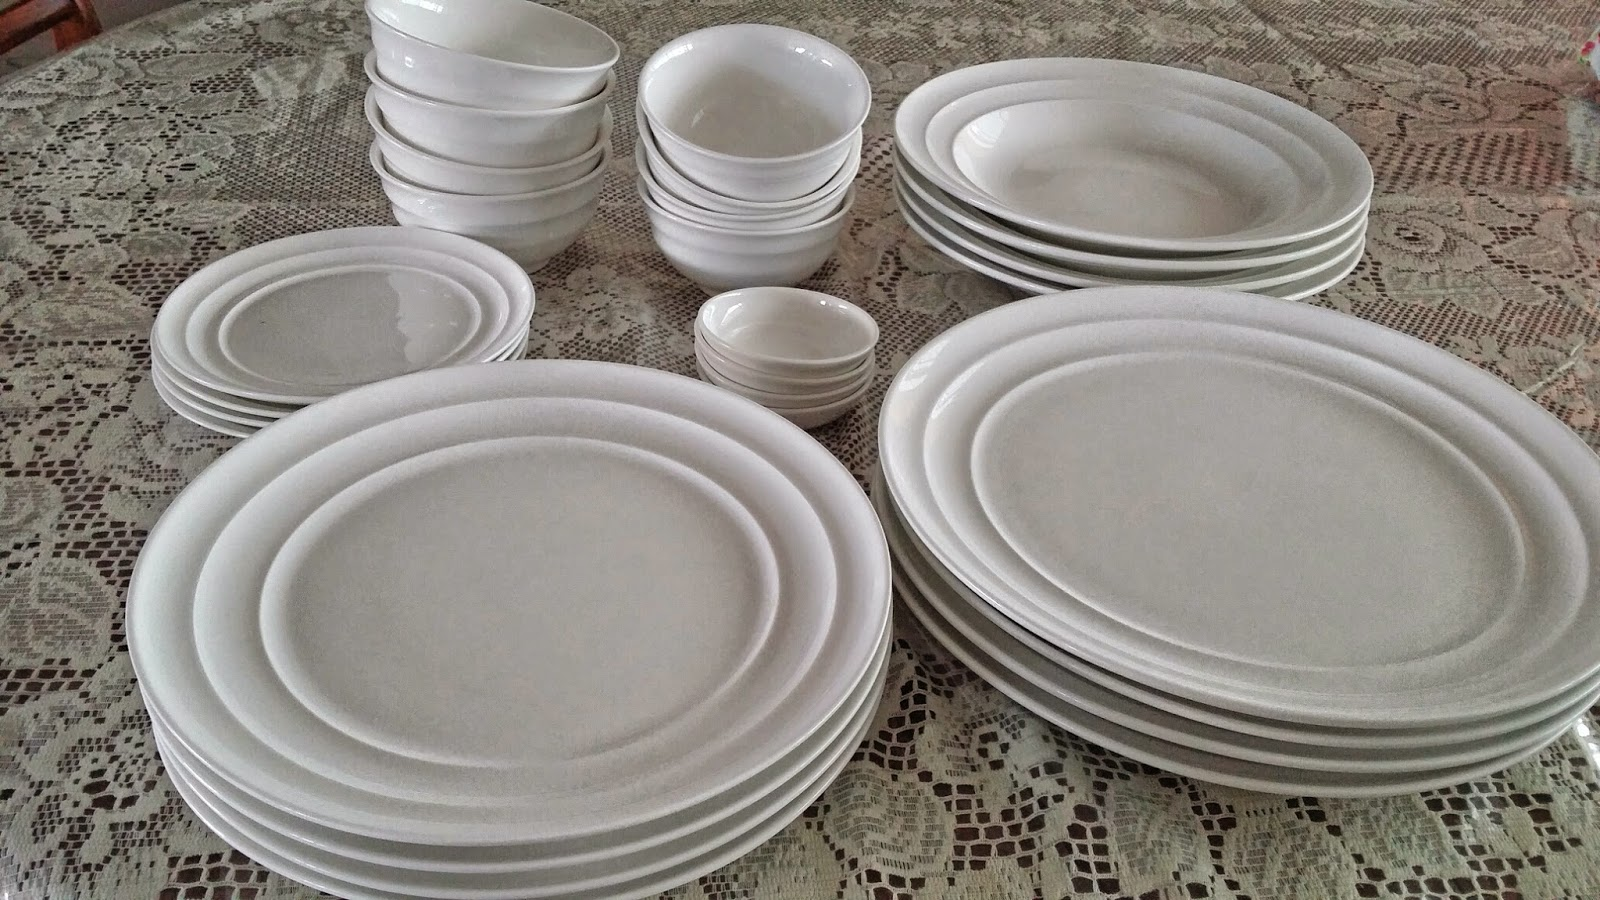 Mille feuille tsp win 28 piece dinner set for Plain white plates ikea